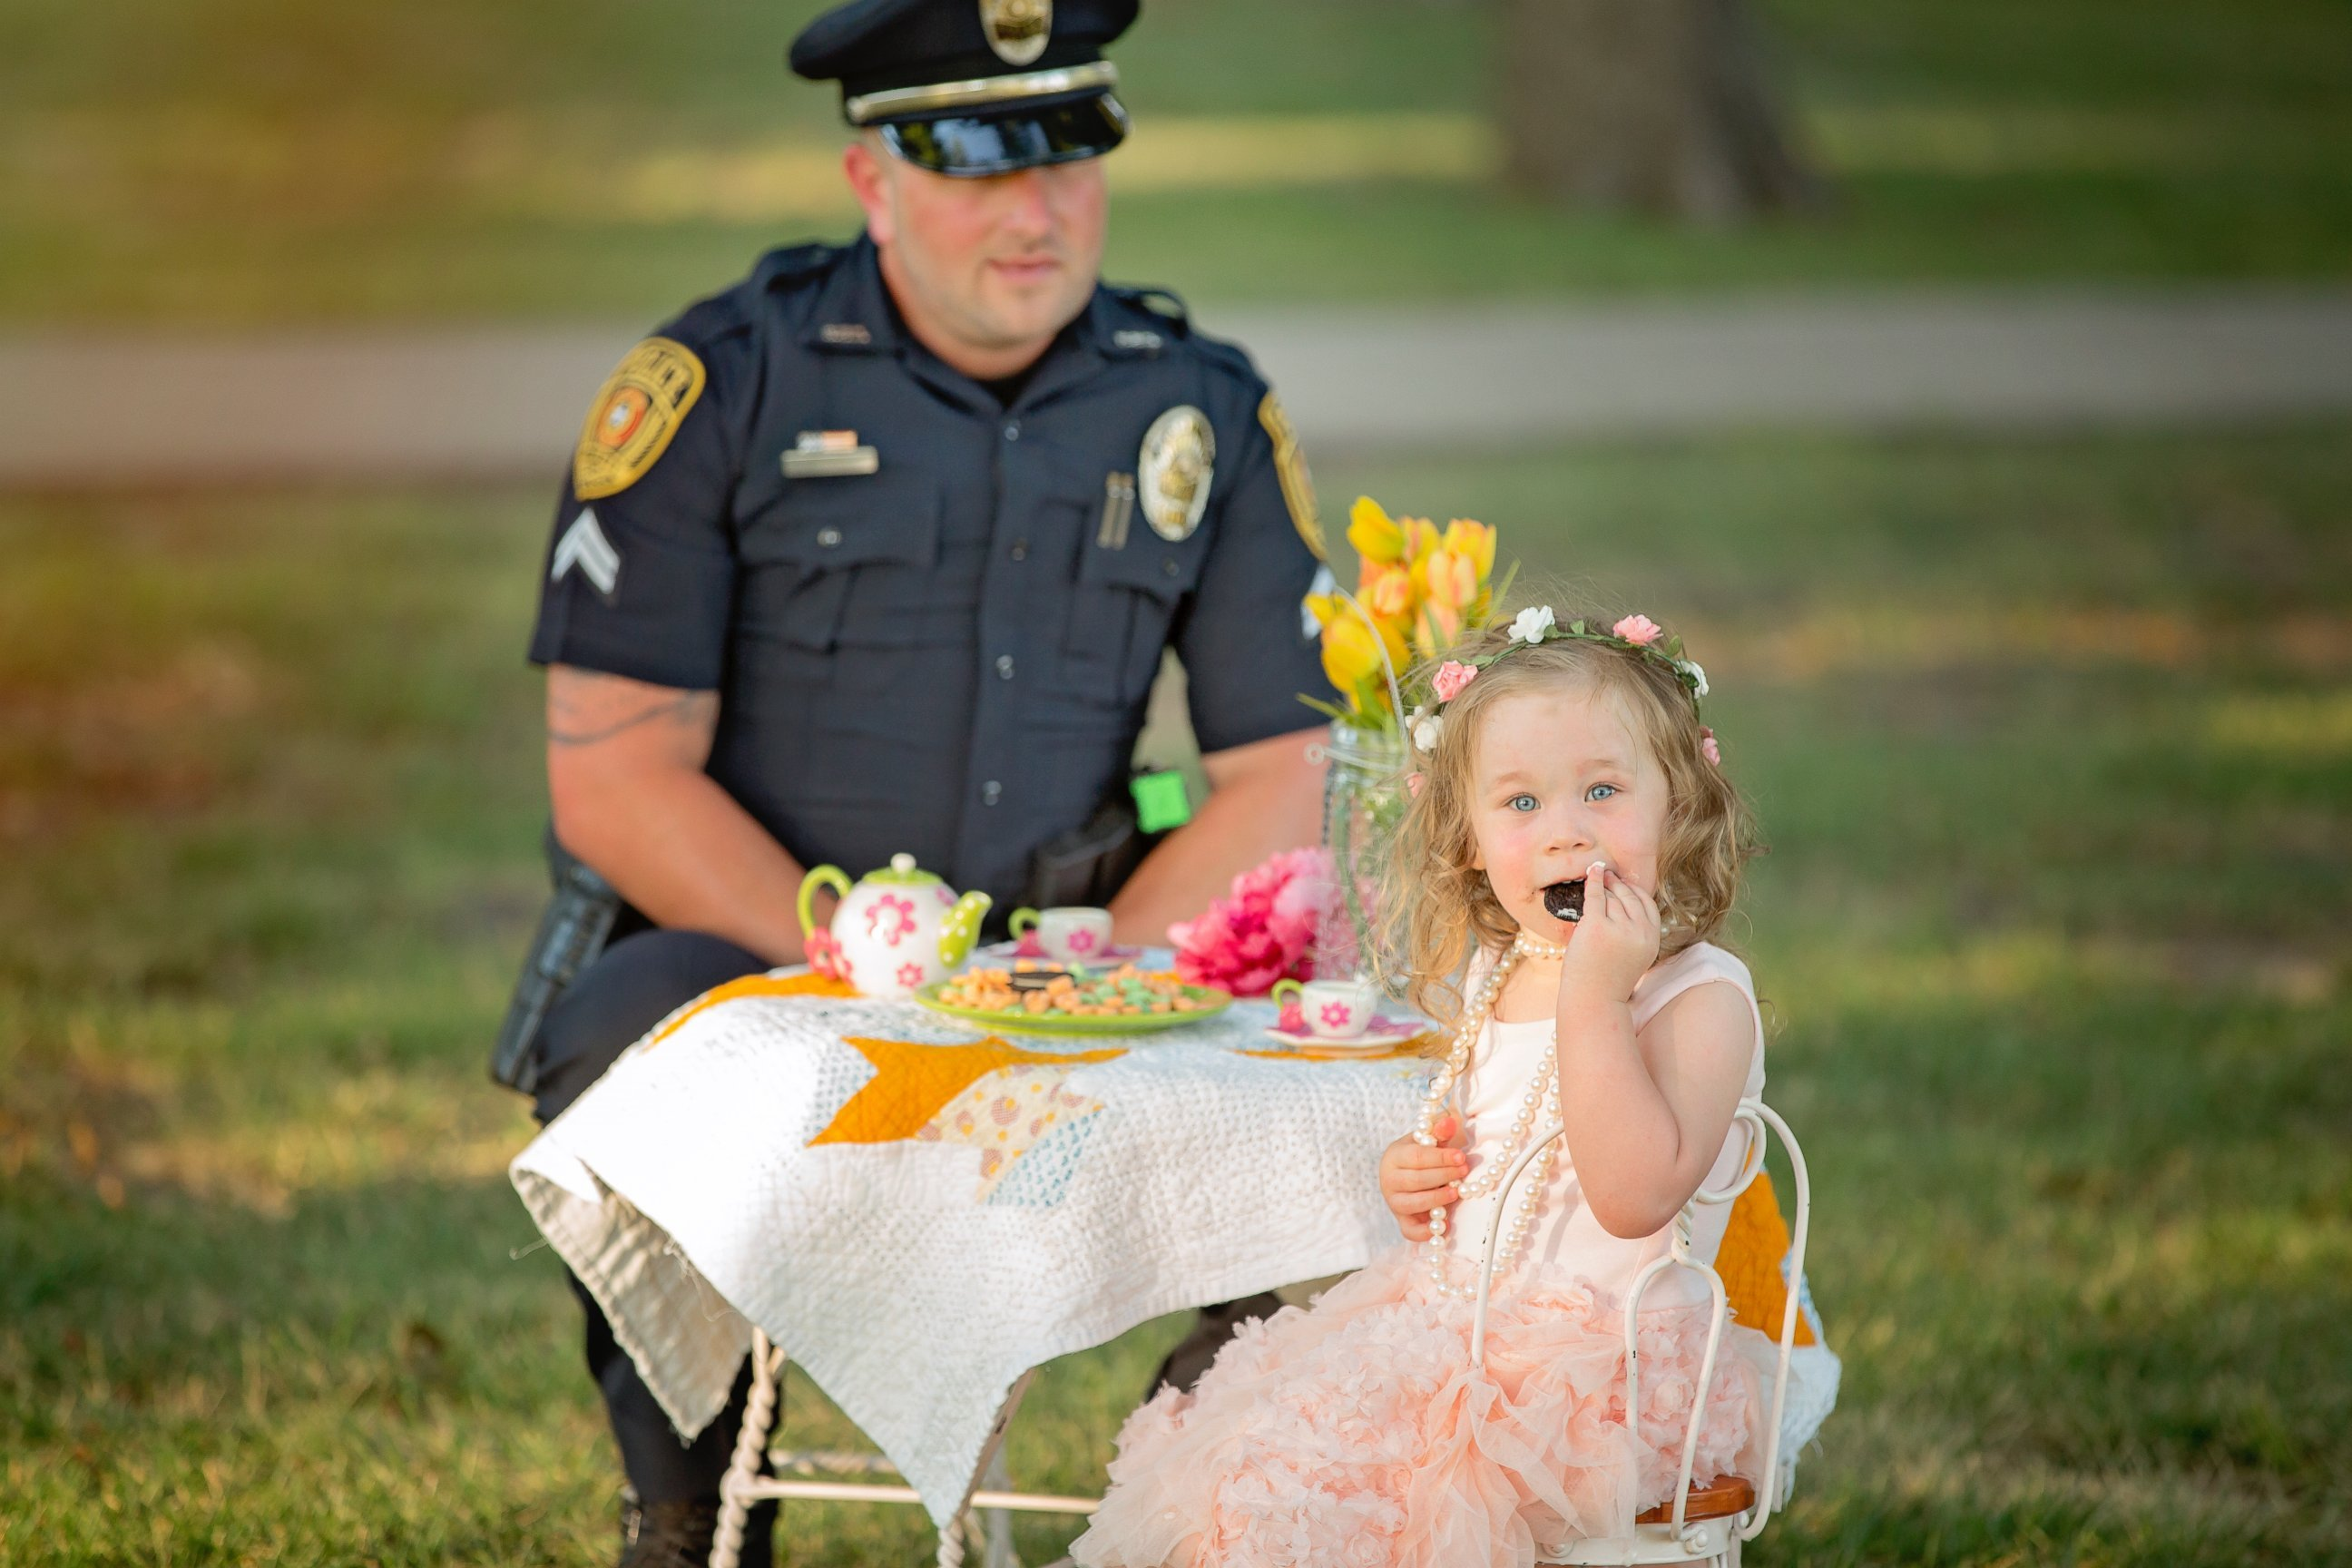 476b1ec0-5586-11e6-8a78-1f25ab43134f_Police-Officer-Has-Tea-Party-With-Toddler-H